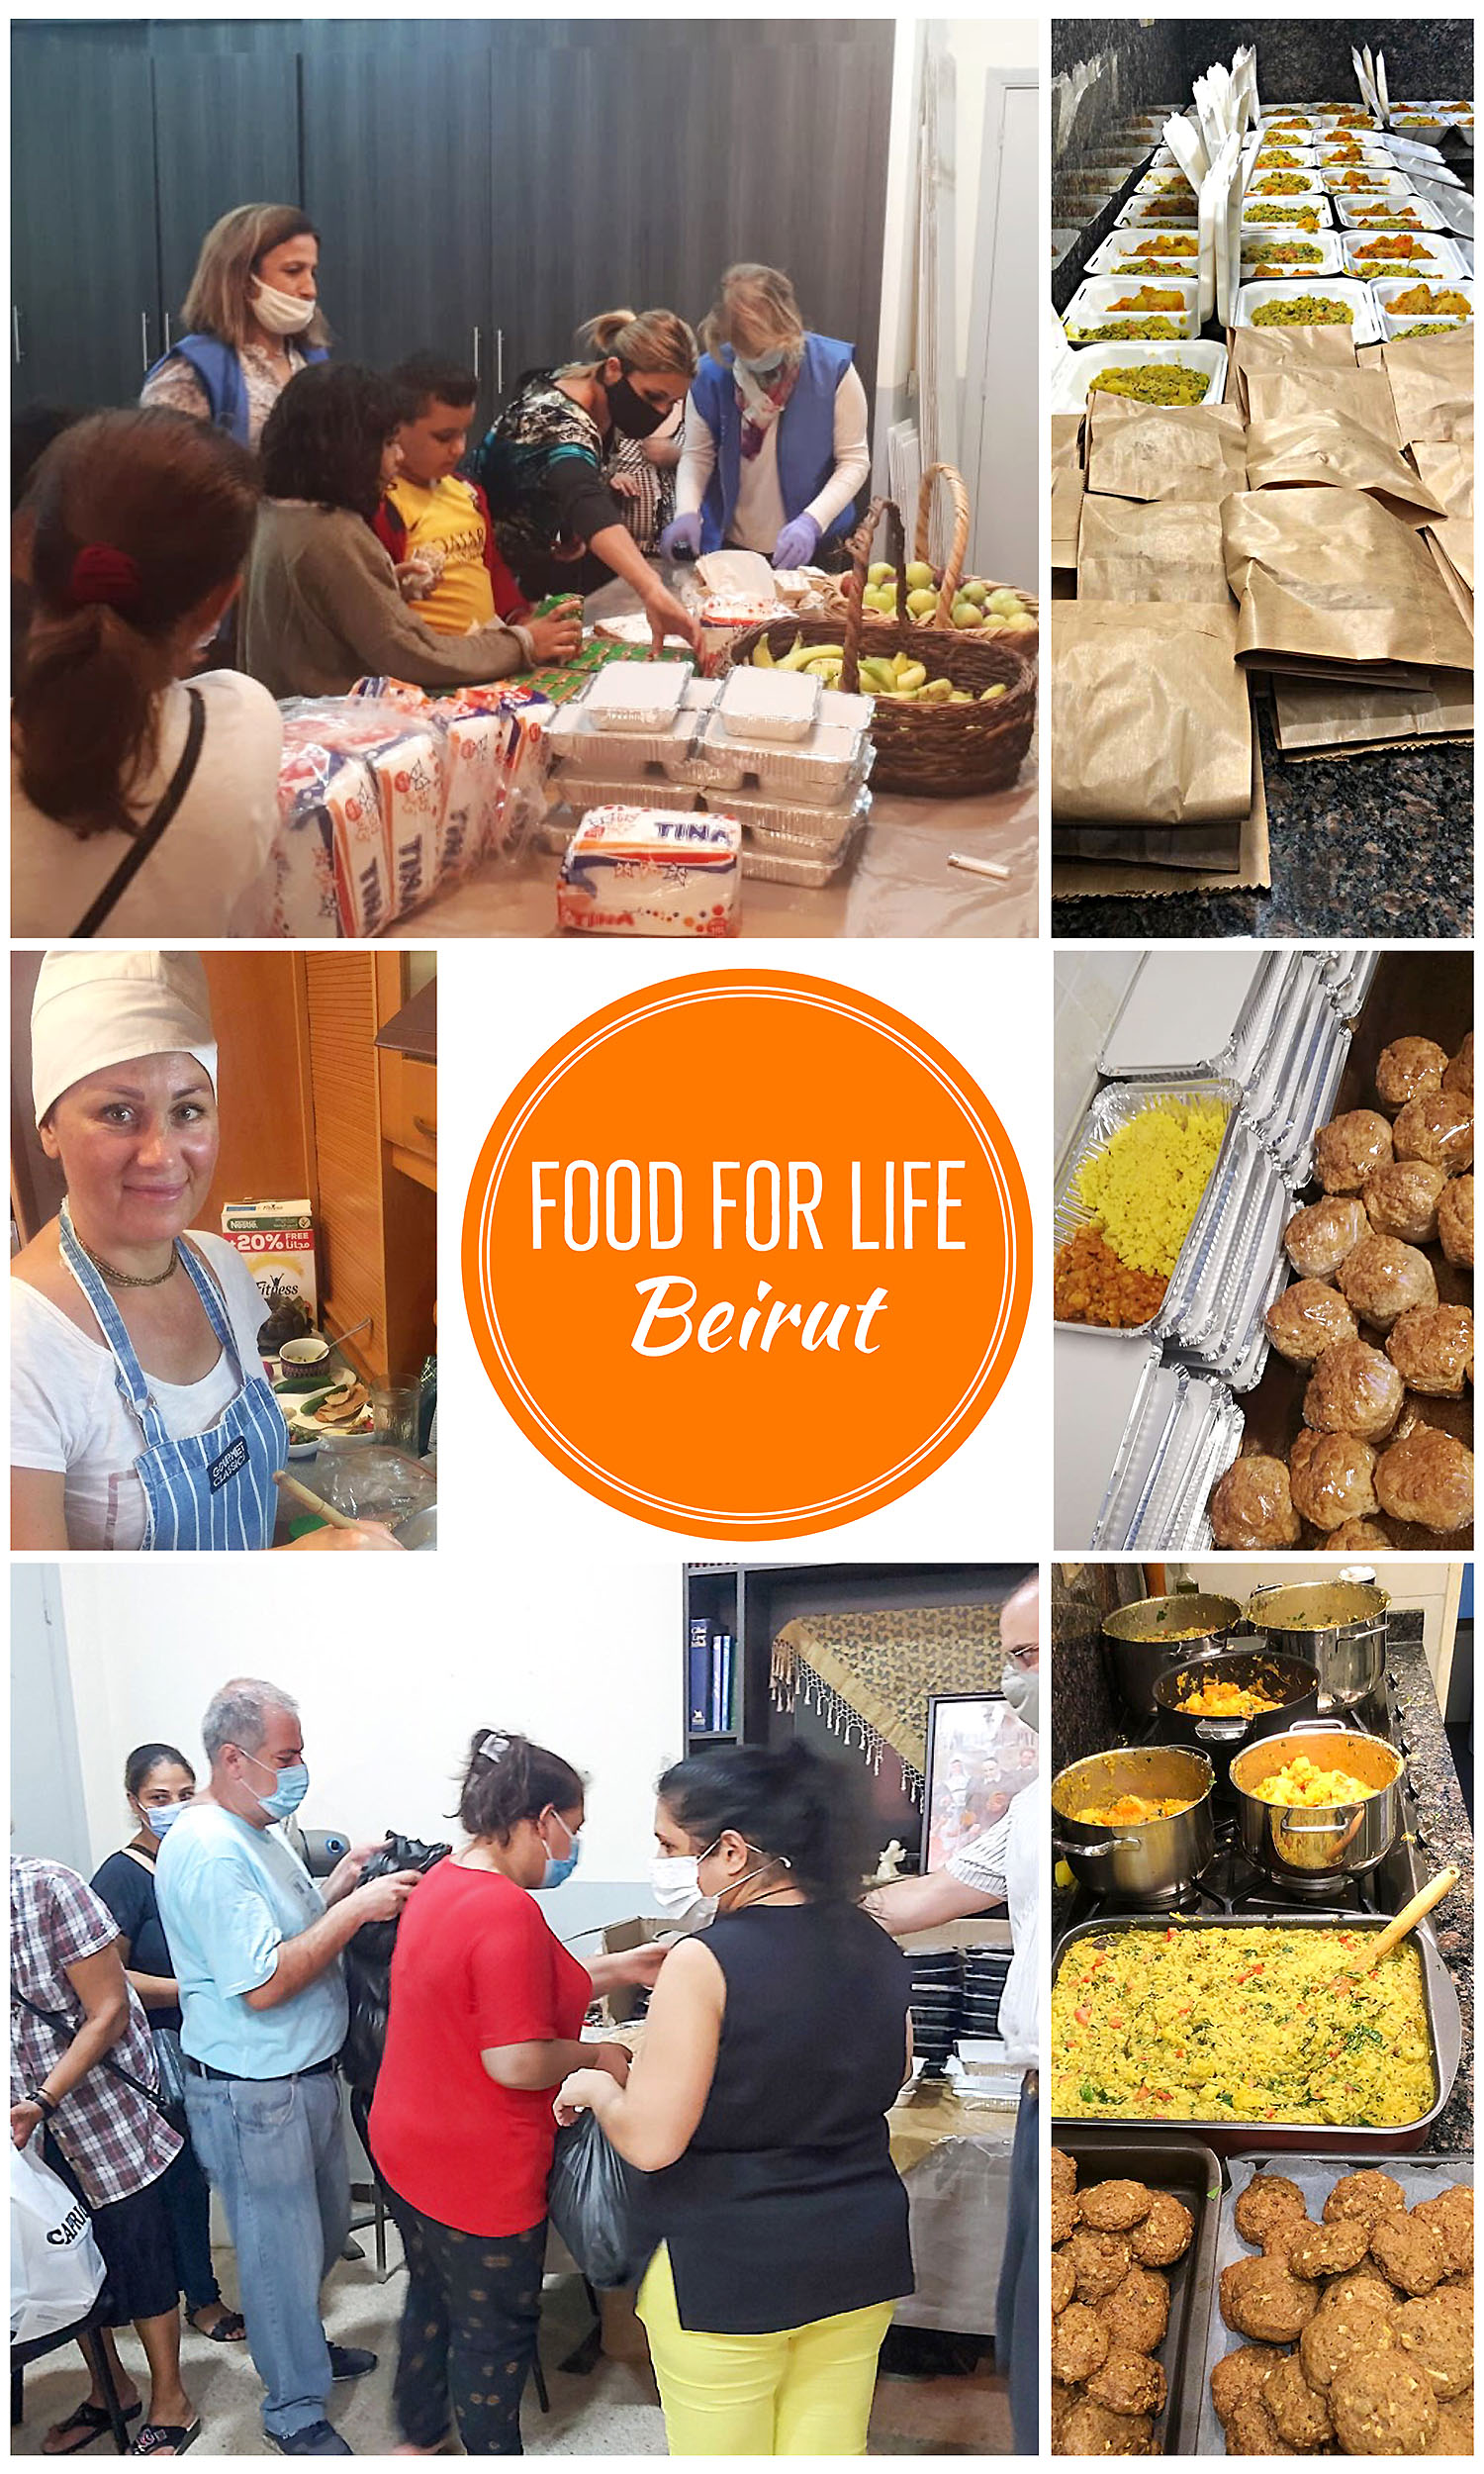 Food for Life Instagram @foodforlife.beirut, charity project, join participate donate for people in need after economic collapse and blast in Beirut Lebanon - home of kirtan Hare Krishna maha mantra